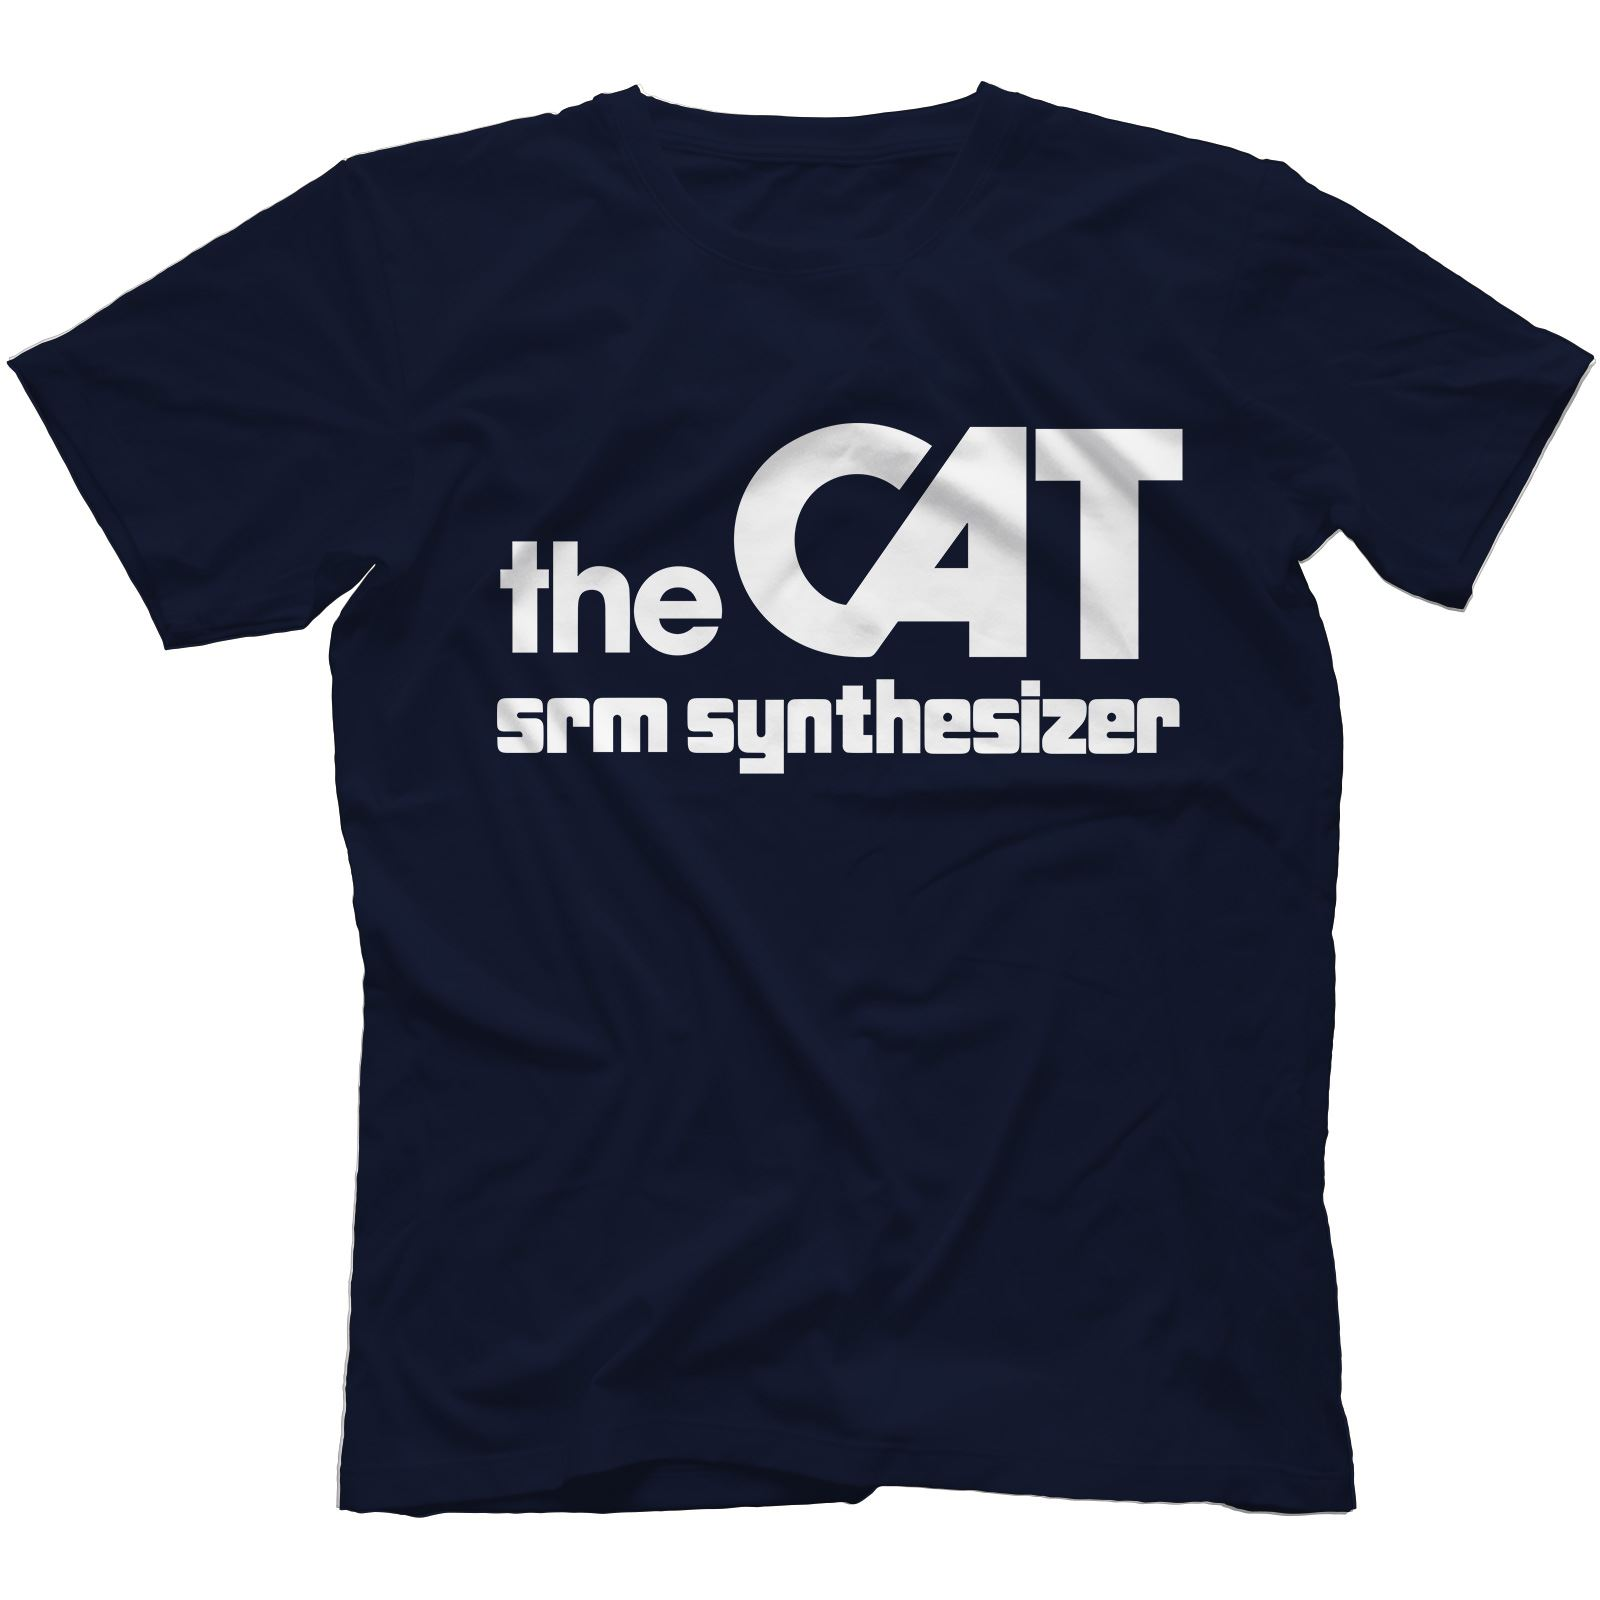 The-Cat-SRM-Synthesiser-T-Shirt-100-Cotton-Retro-Analog-Arp-Odyssey Indexbild 41